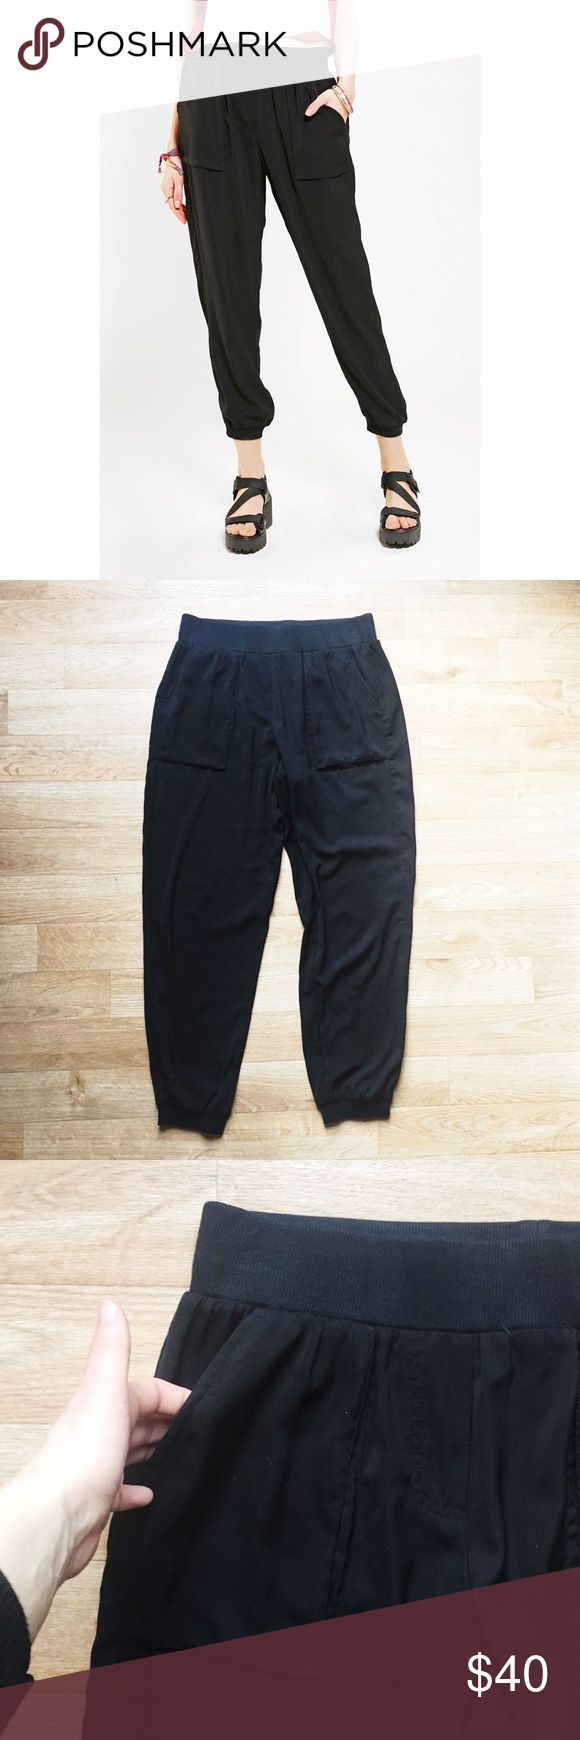 Urban Outfitters Silence + Noice Comfy Black Pants Urban Outfitters Silence + Noice Comfy Black Pants. Perfect condition. Very comfortable!   Size Small. Measurements are in the pictures!   Happy to answer any questions!  Thanks for looking!   OFFERS are welcome!  ** 10% off Bundles of 3+ ** Ships within 24 hours!  Smoke free home. No trades or Paypal. Urban Outfitters Pants Ankle & Cropped